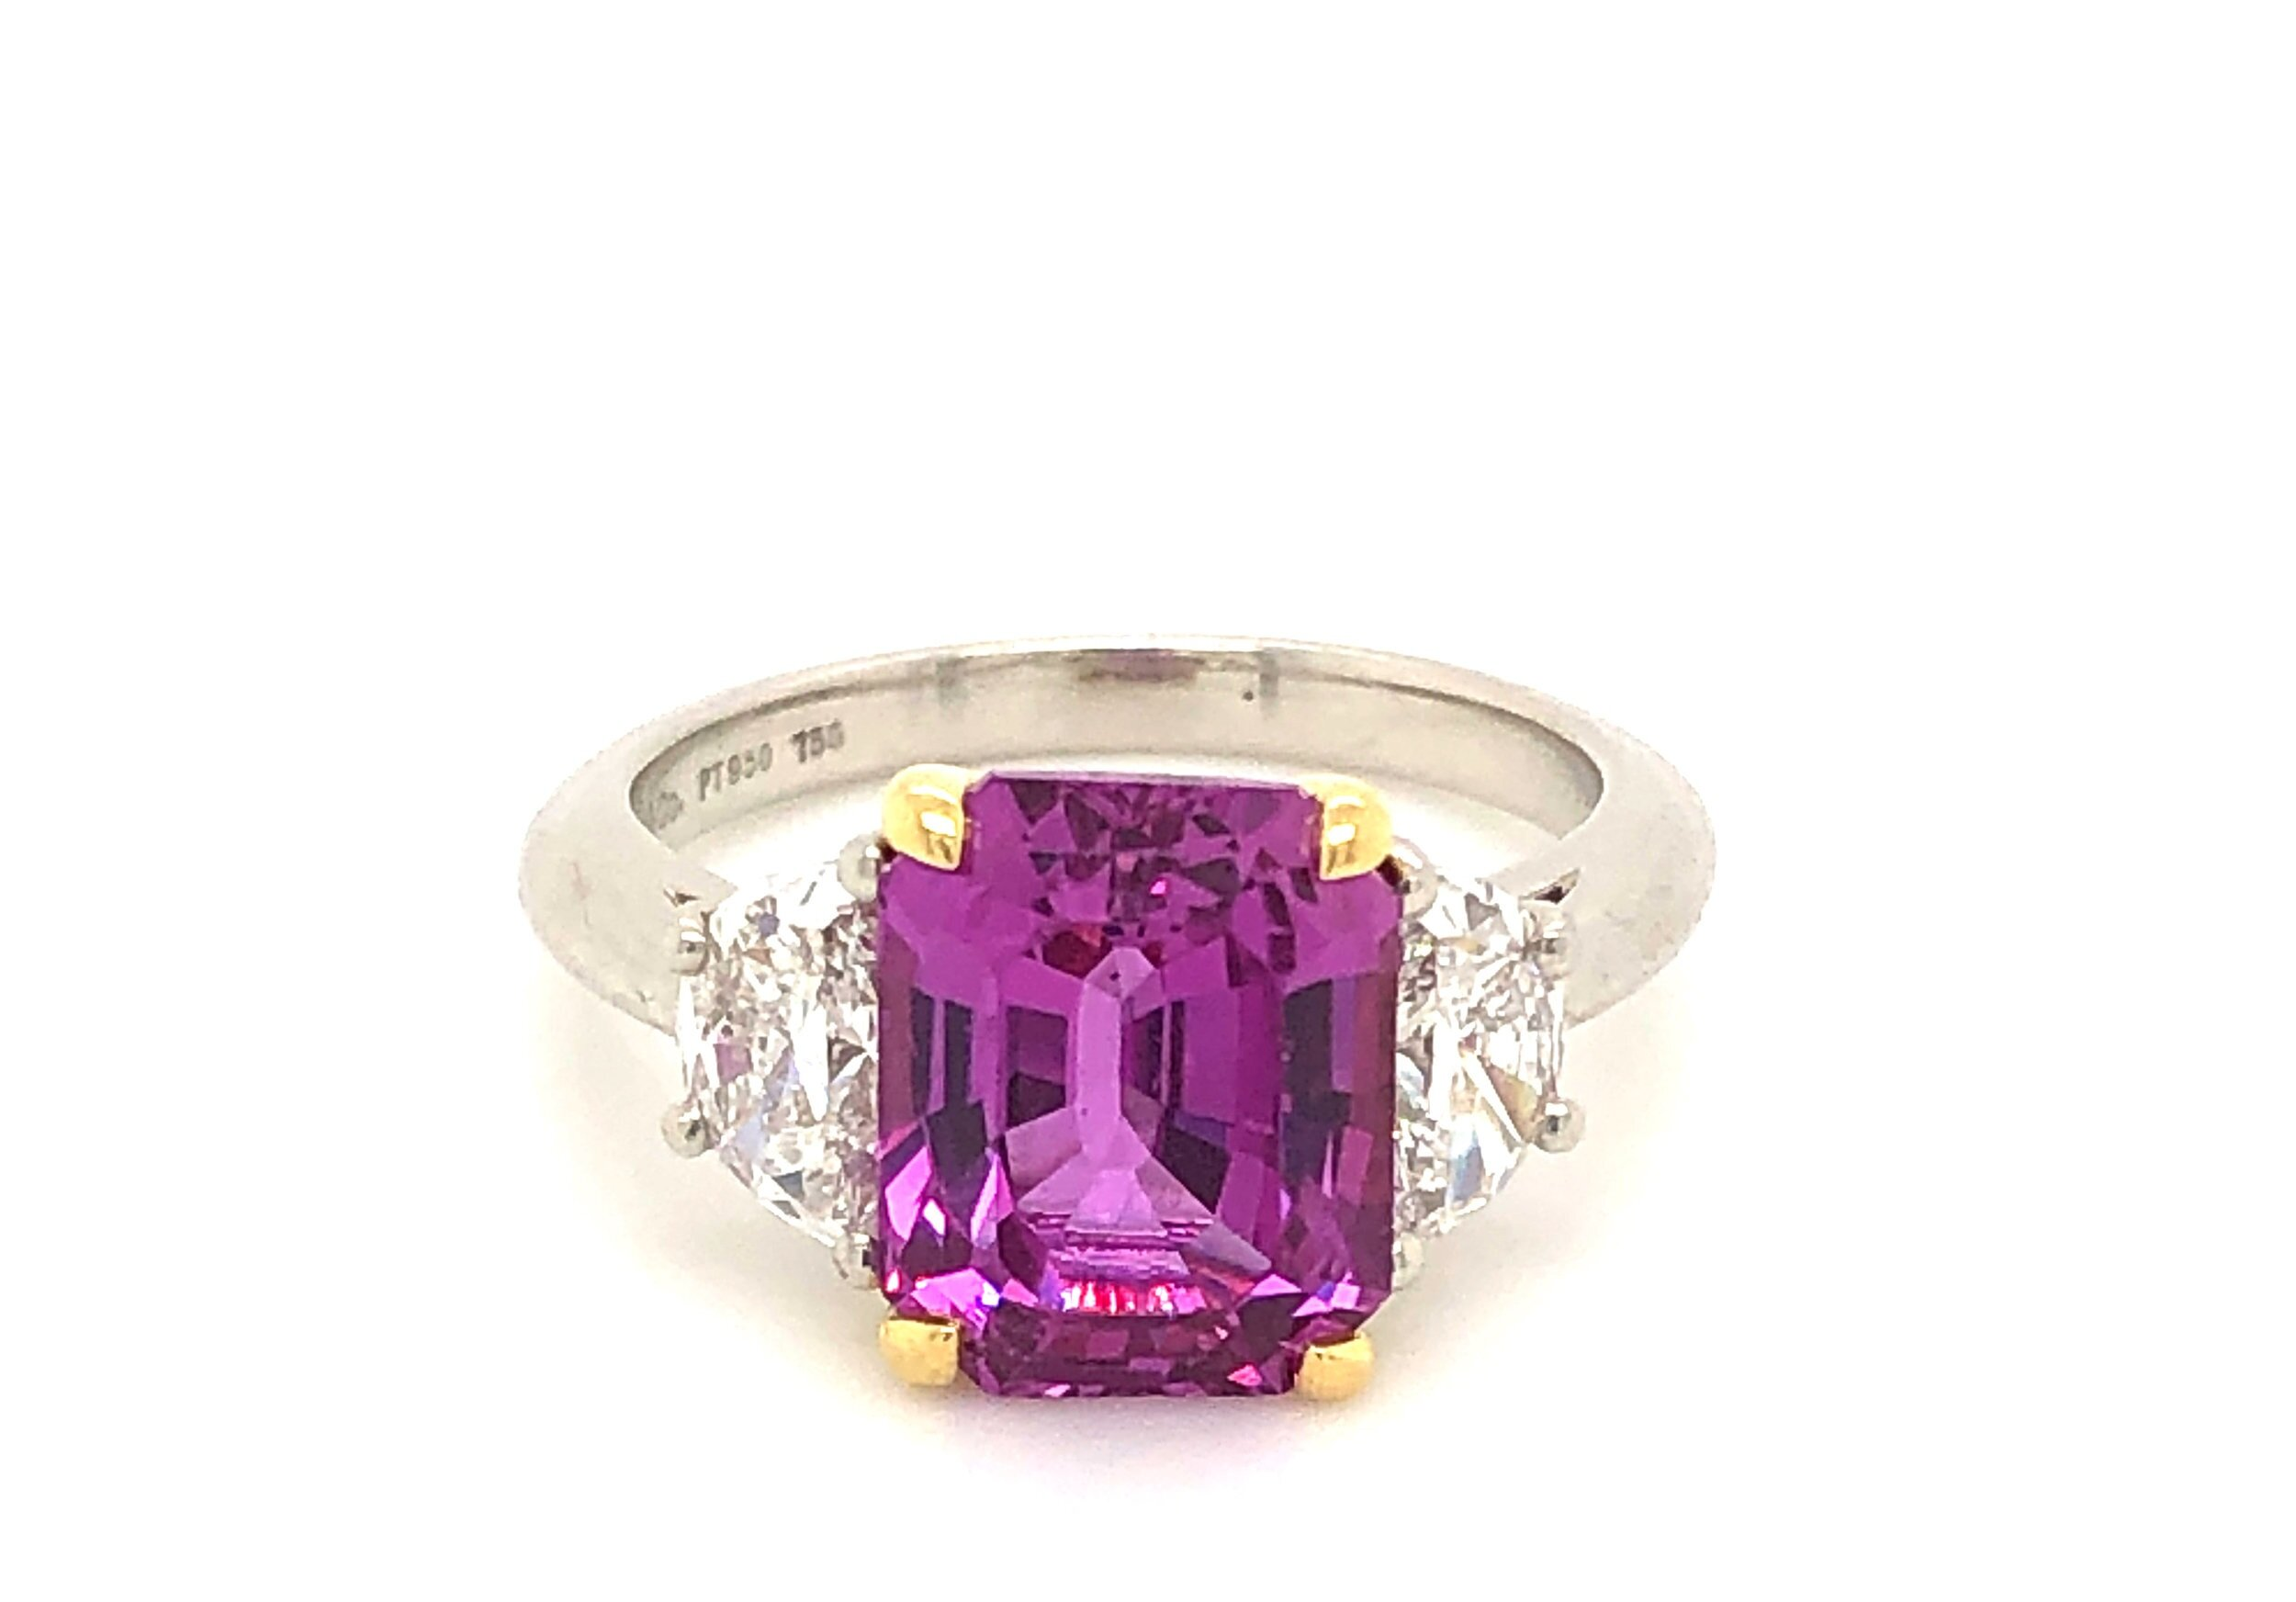 3 Stone Ring, Platinum with Pink Sapphire Center & Trapezoid Diamond Side Stones,  Tiffany & Co.   Est. US$ 15,000-18,000